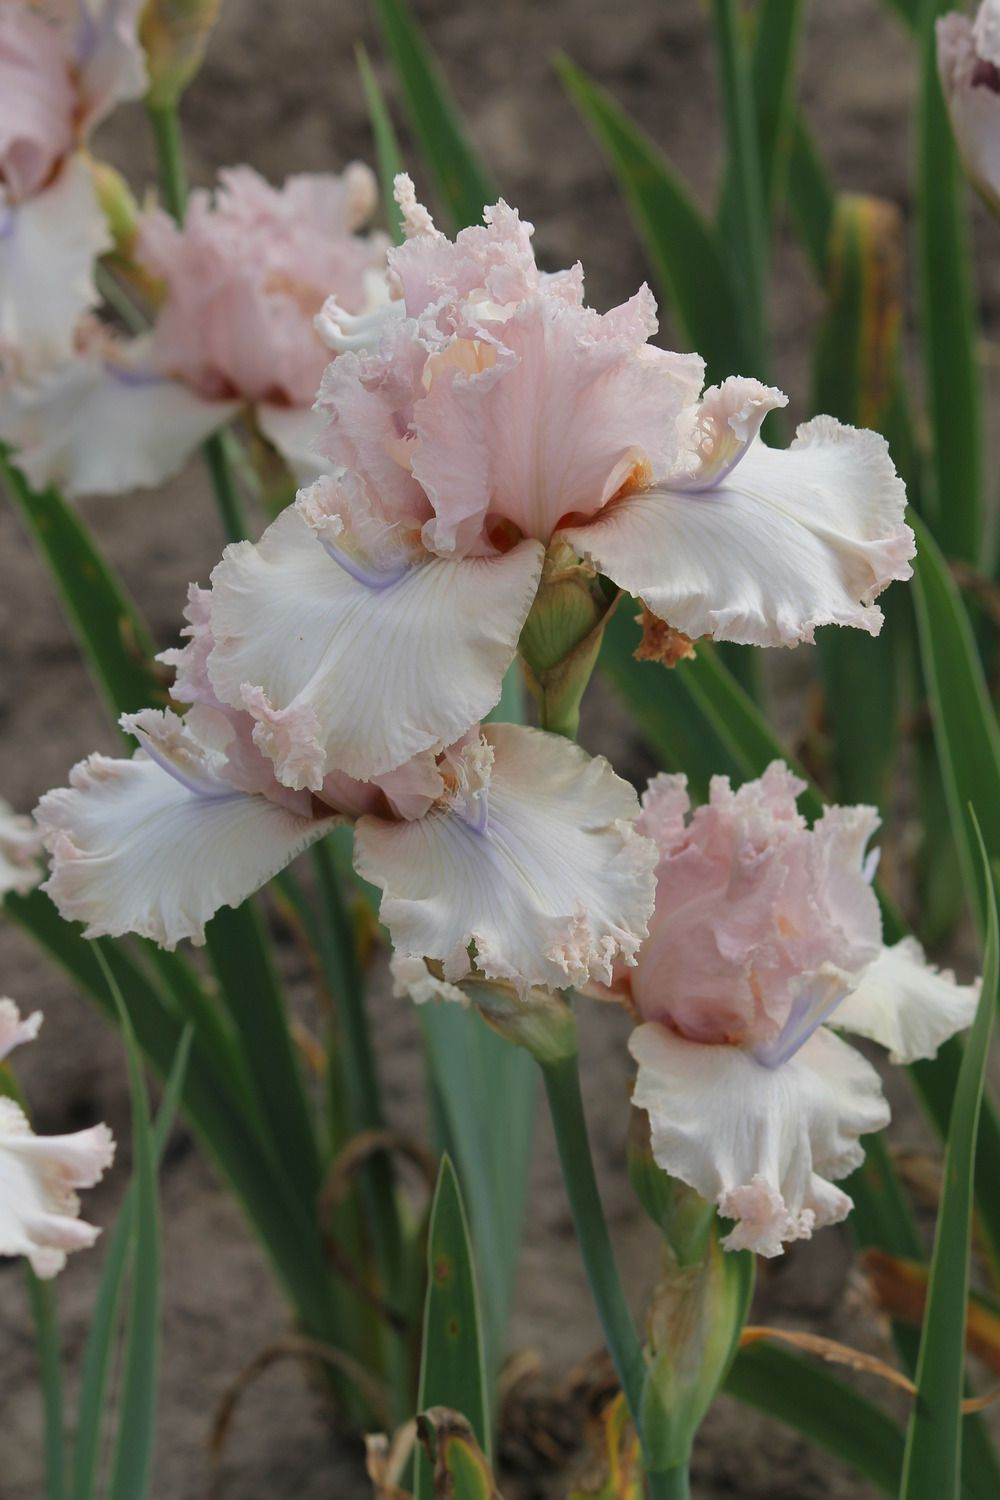 Photo Of Tall Bearded Iris Iris Isadora Belle Uploaded By